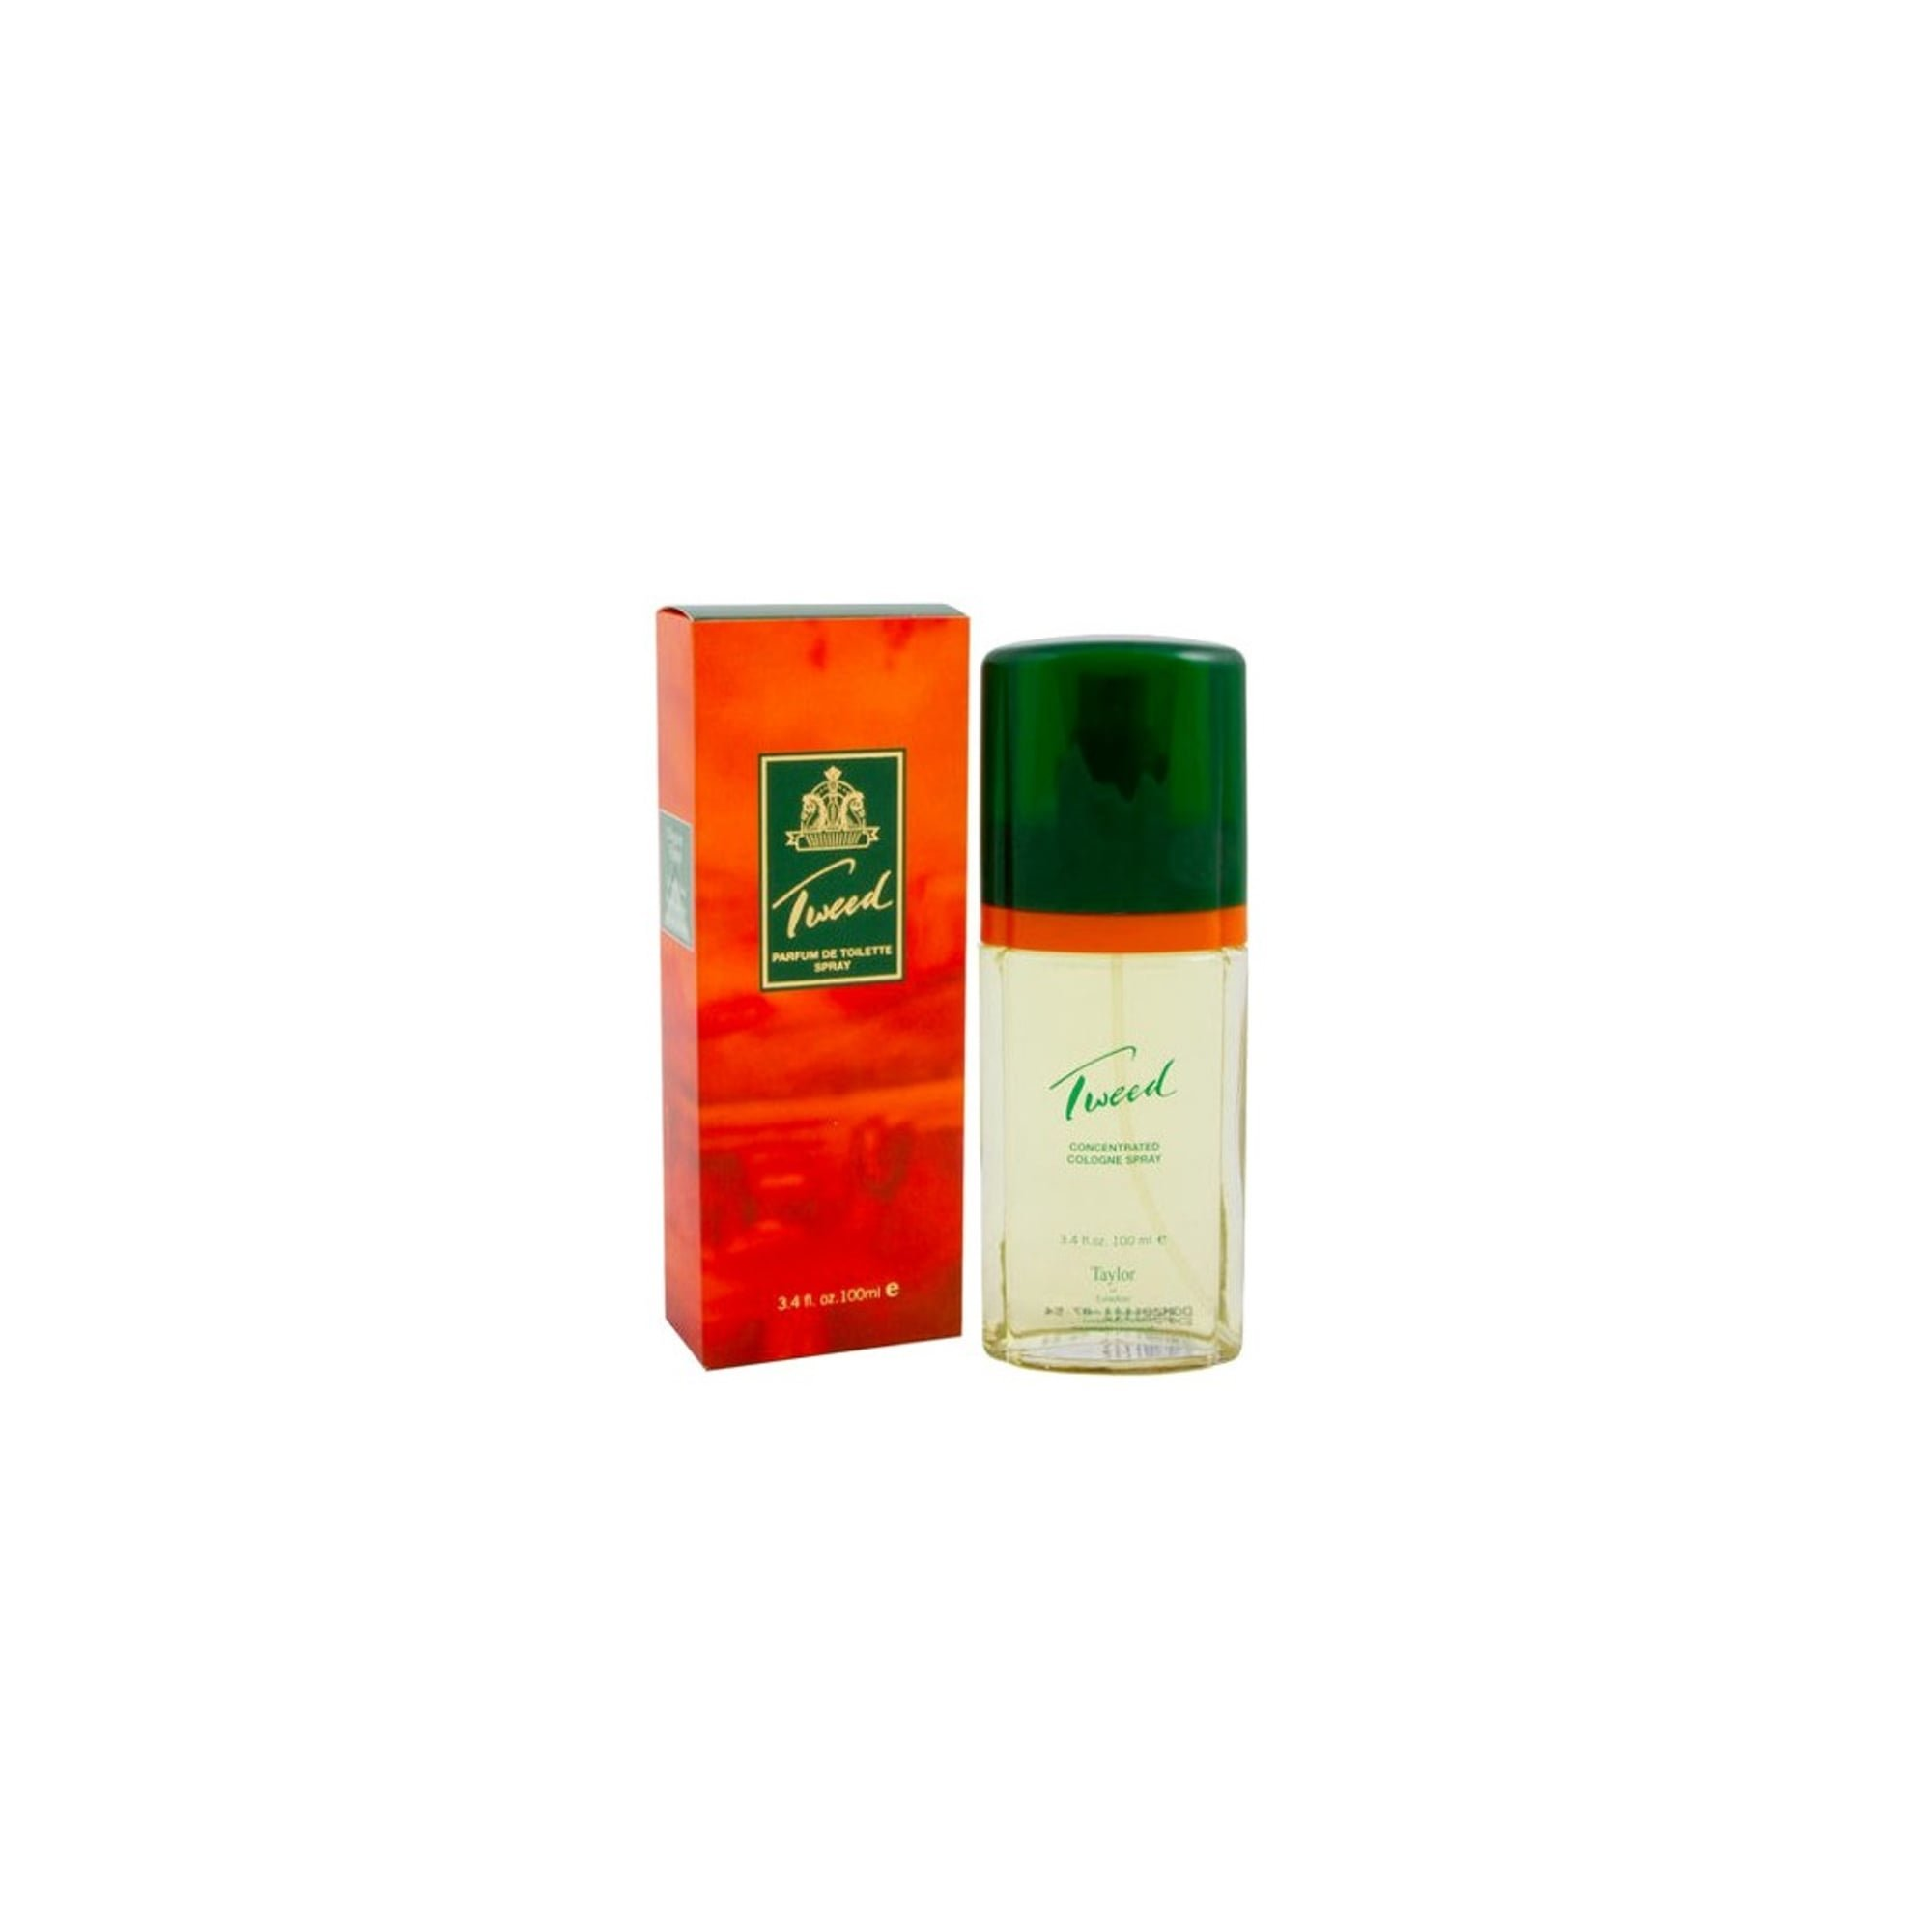 Tweed by Taylor of London Concentrated Cologne Spray 100ml